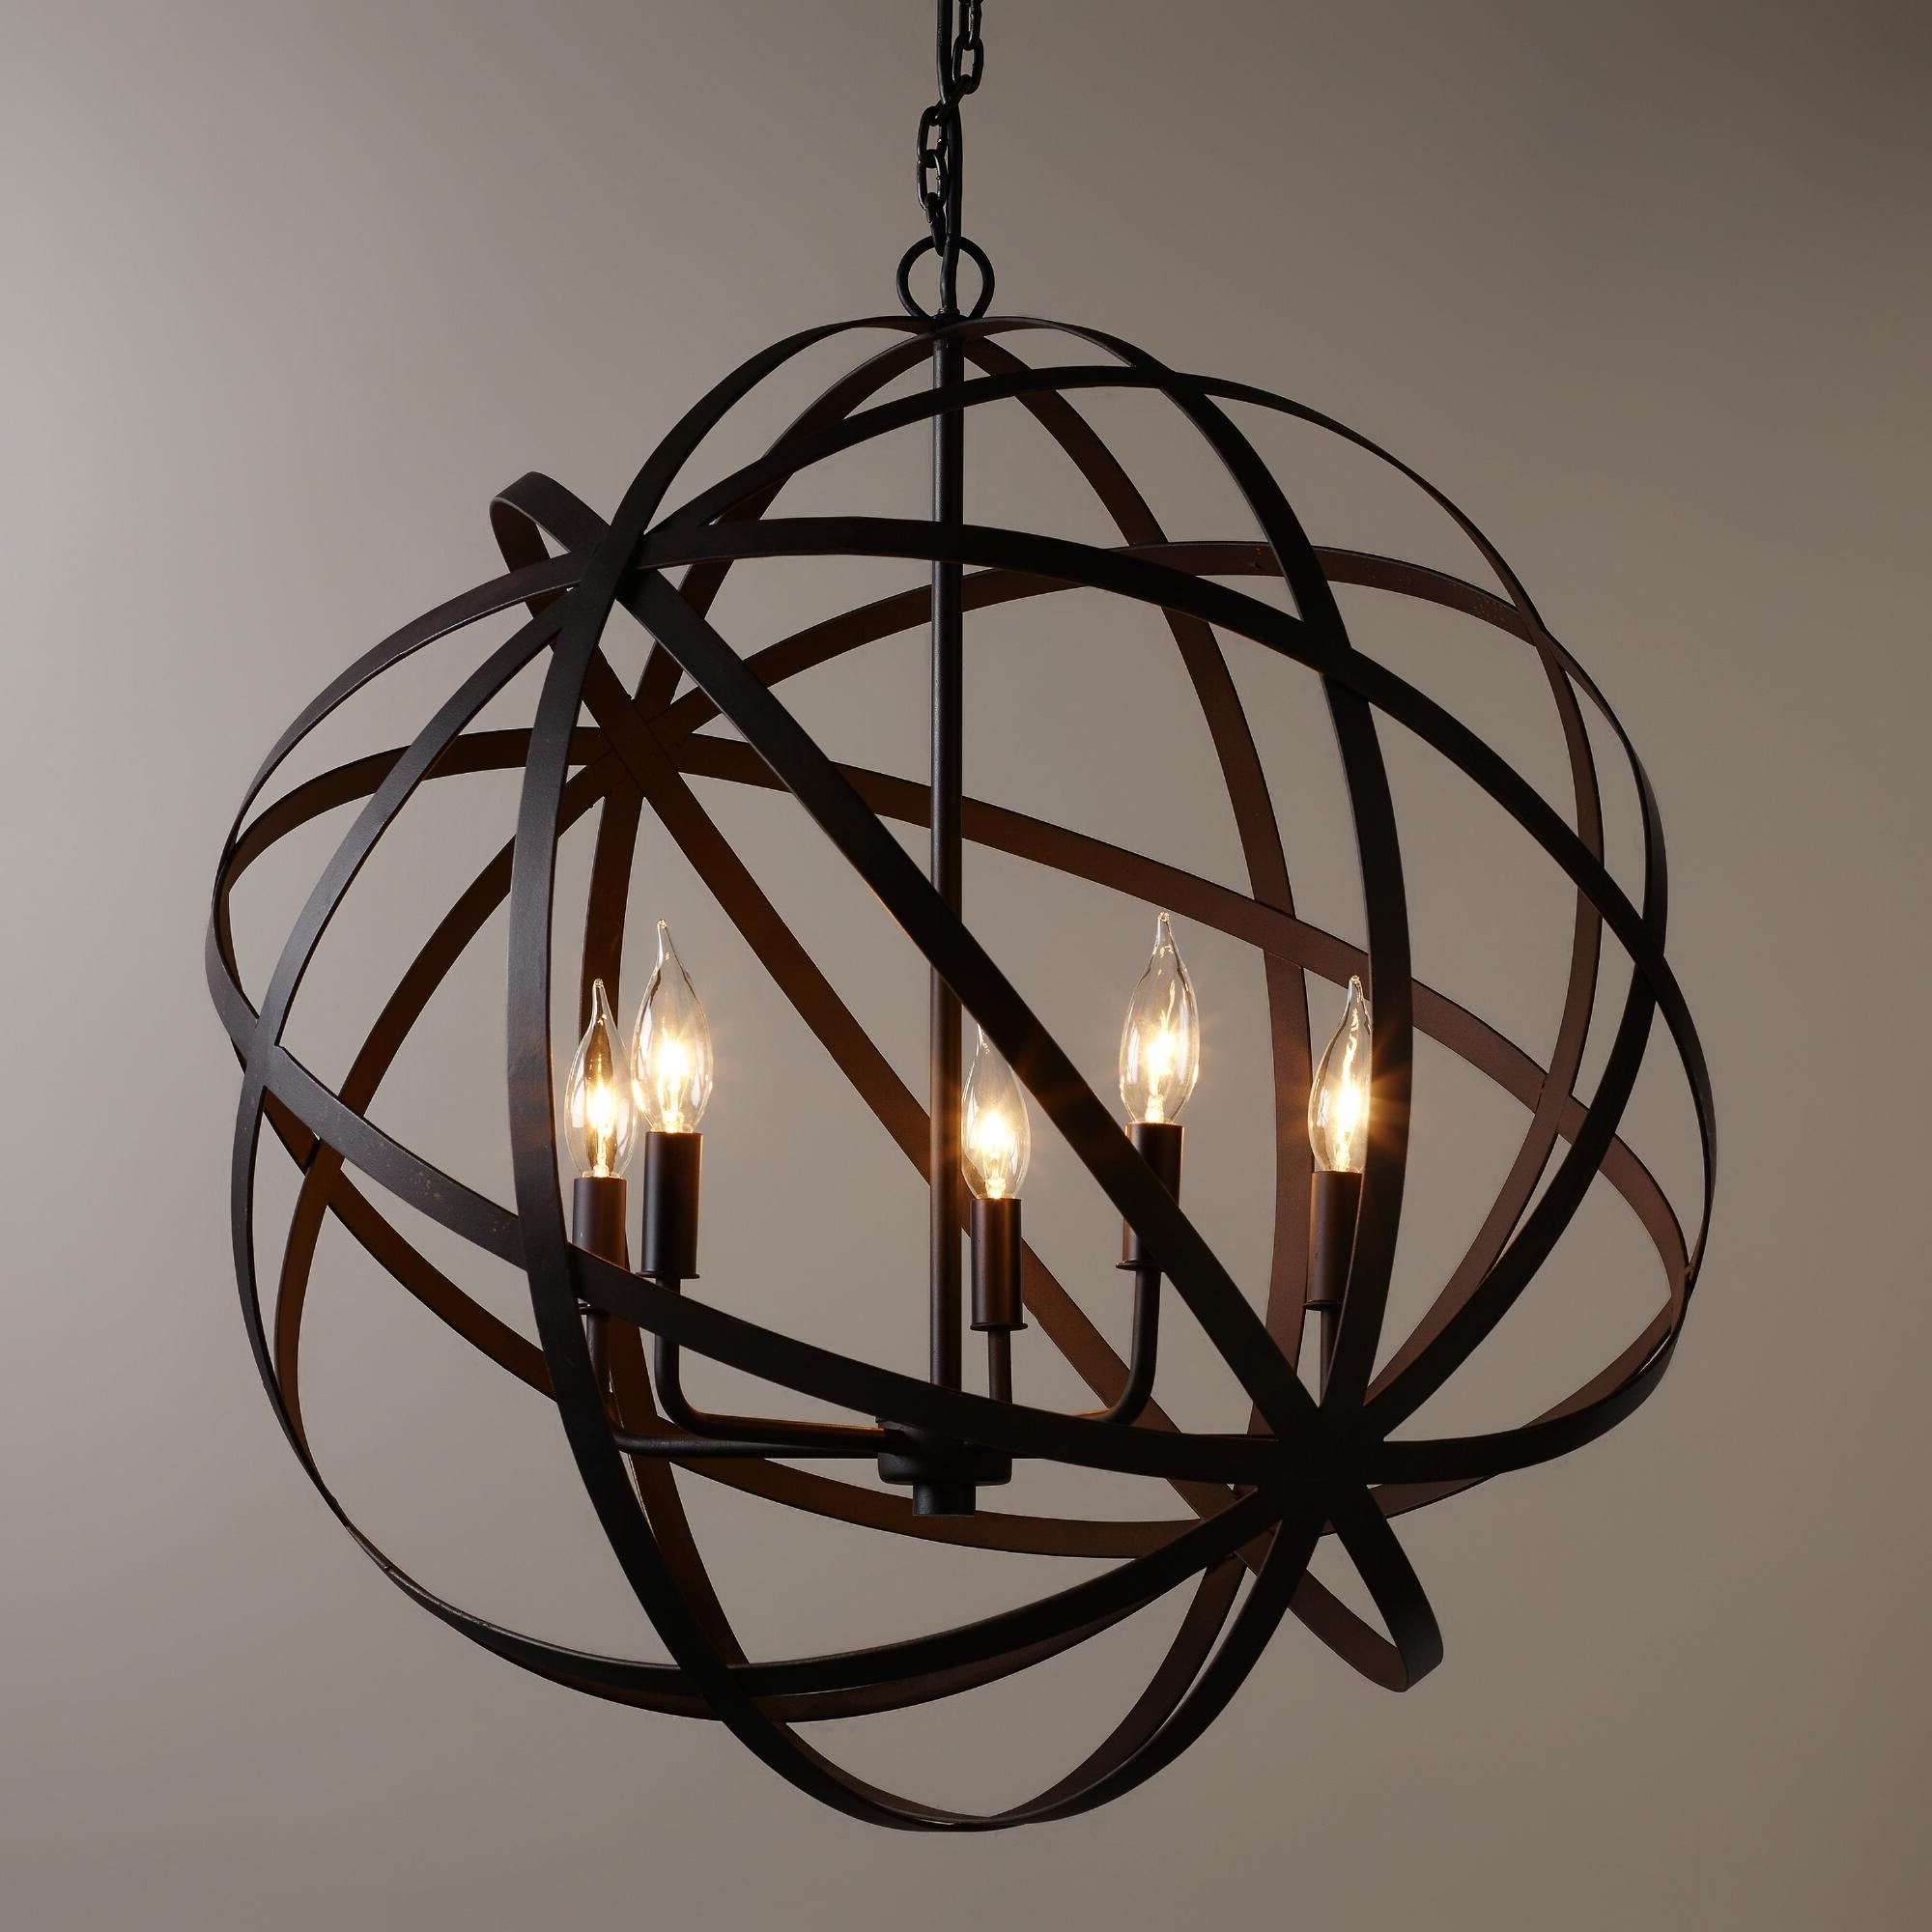 Orb Chandeliers Intended For Latest Light : Creative Orb Chandelier About Interior Designing Home Ideas (View 2 of 15)